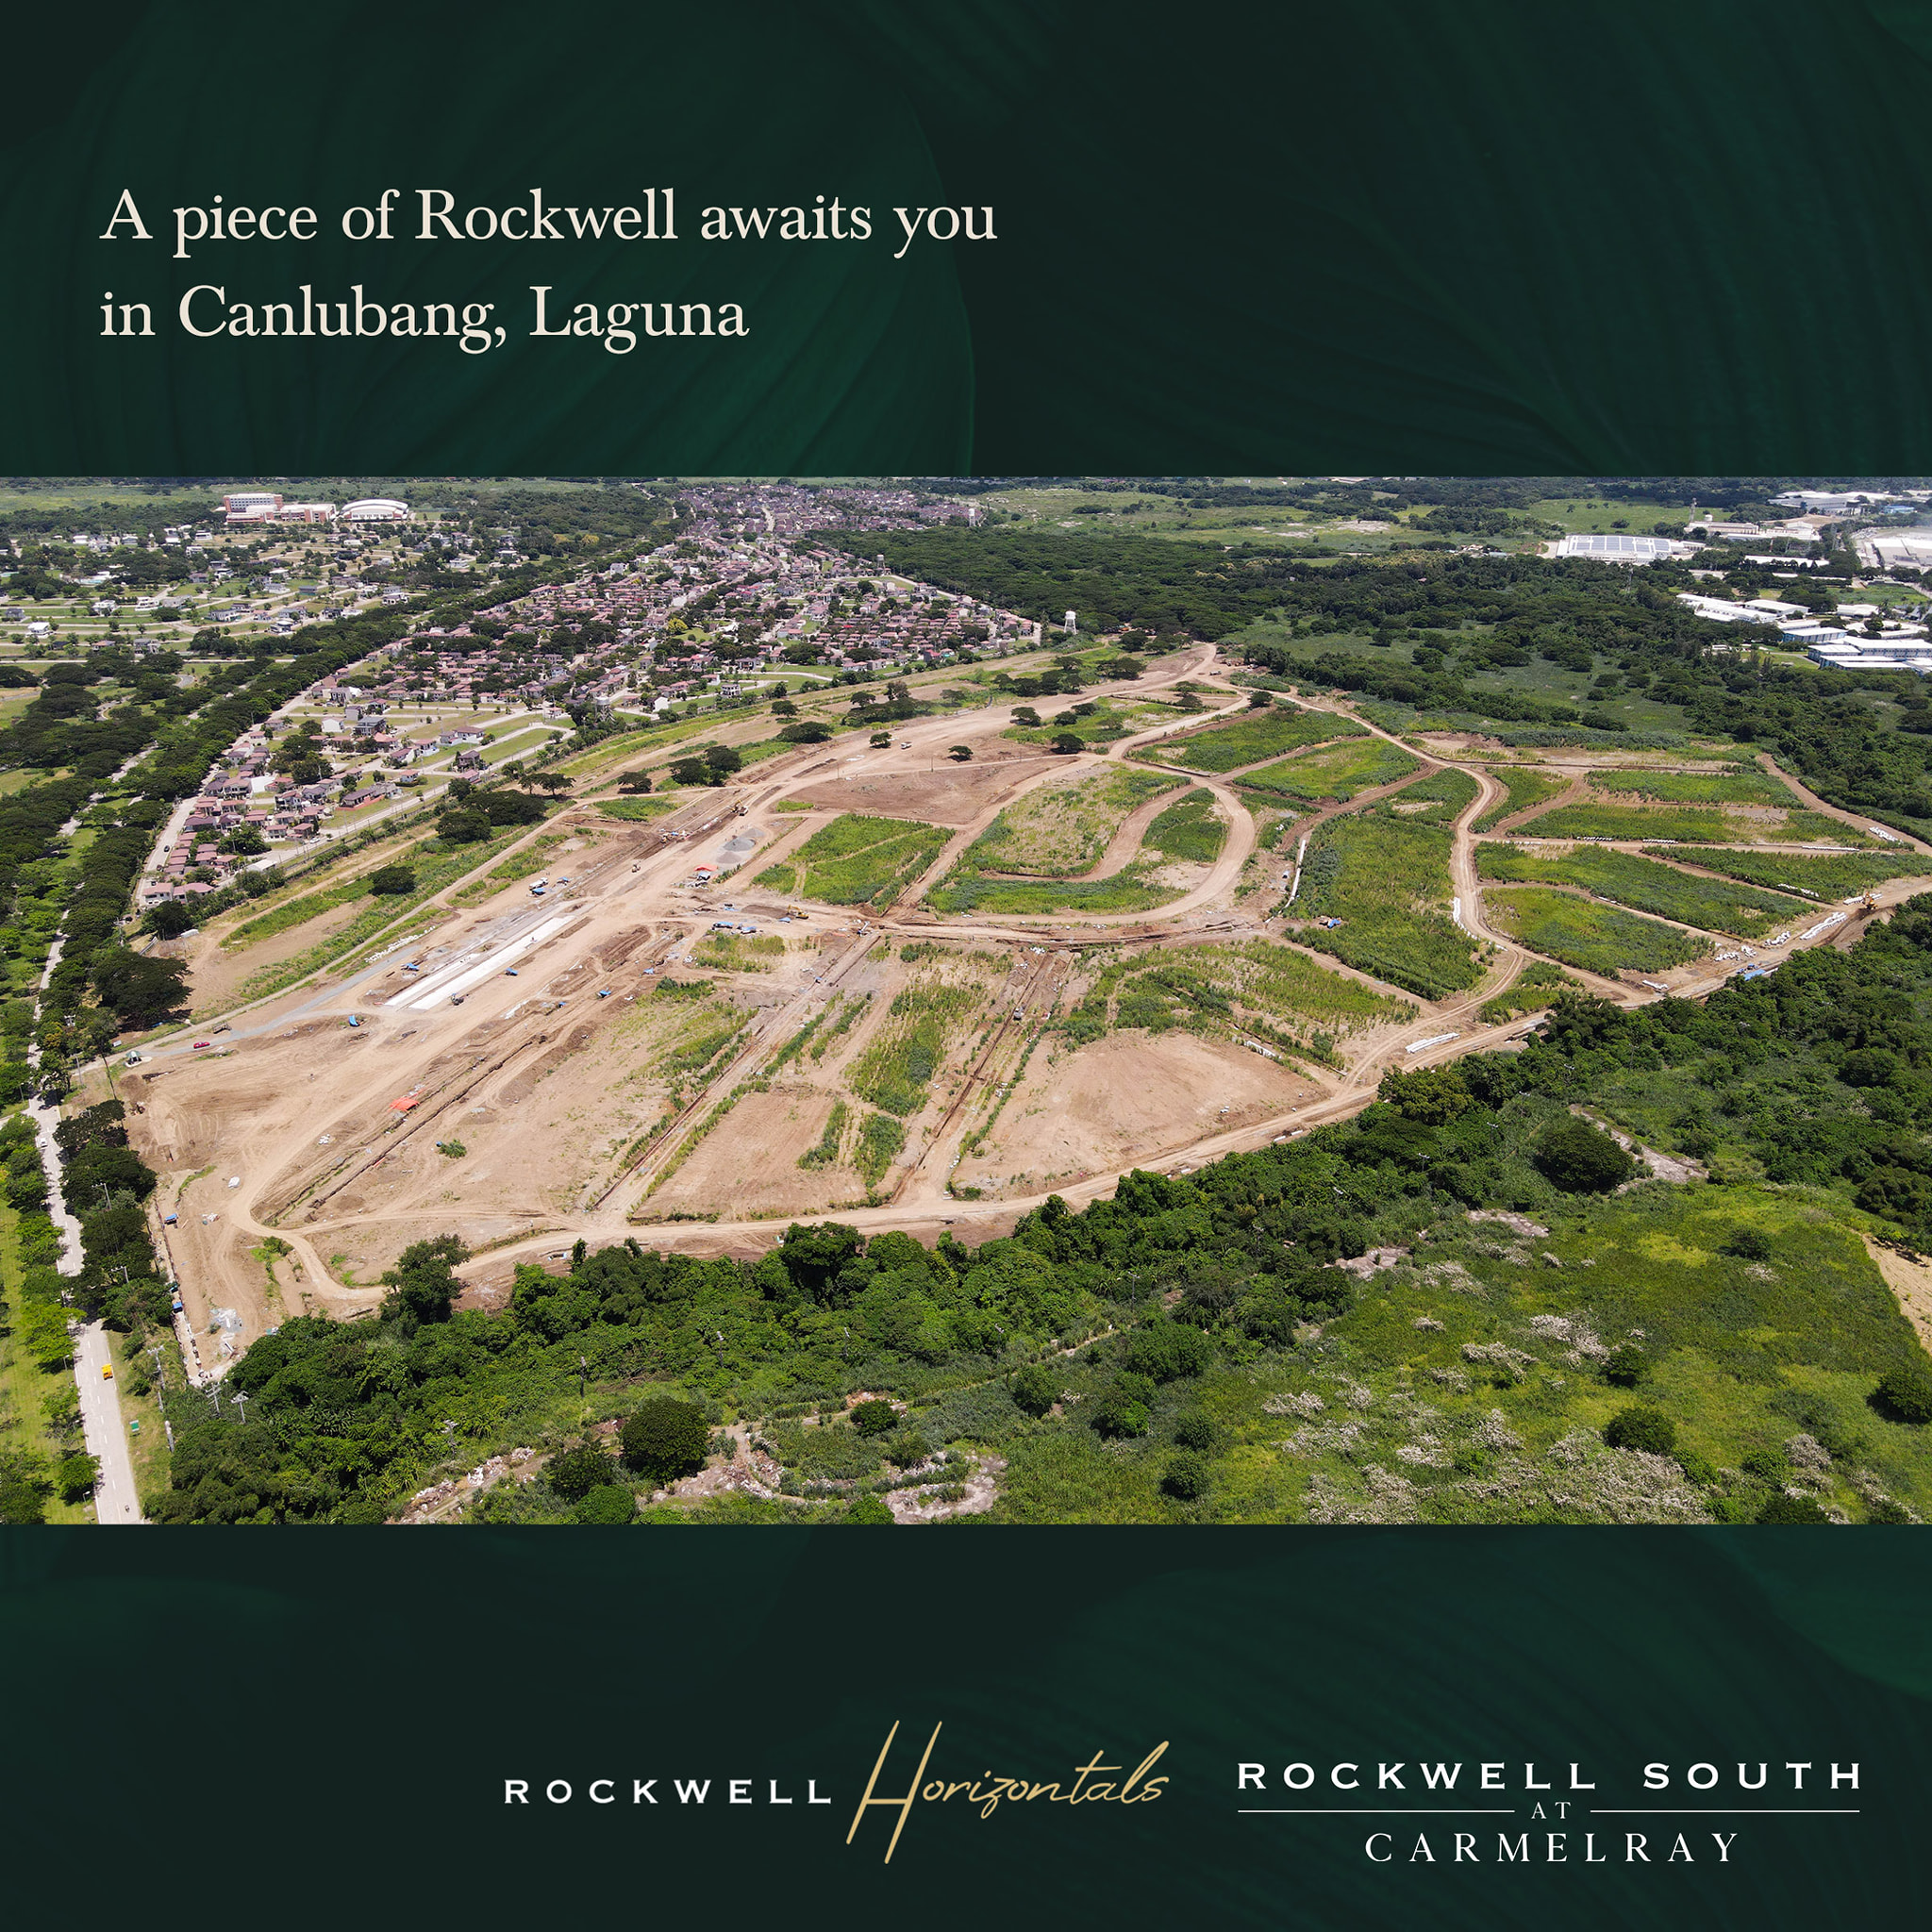 Rockwell South At Carmelray Location